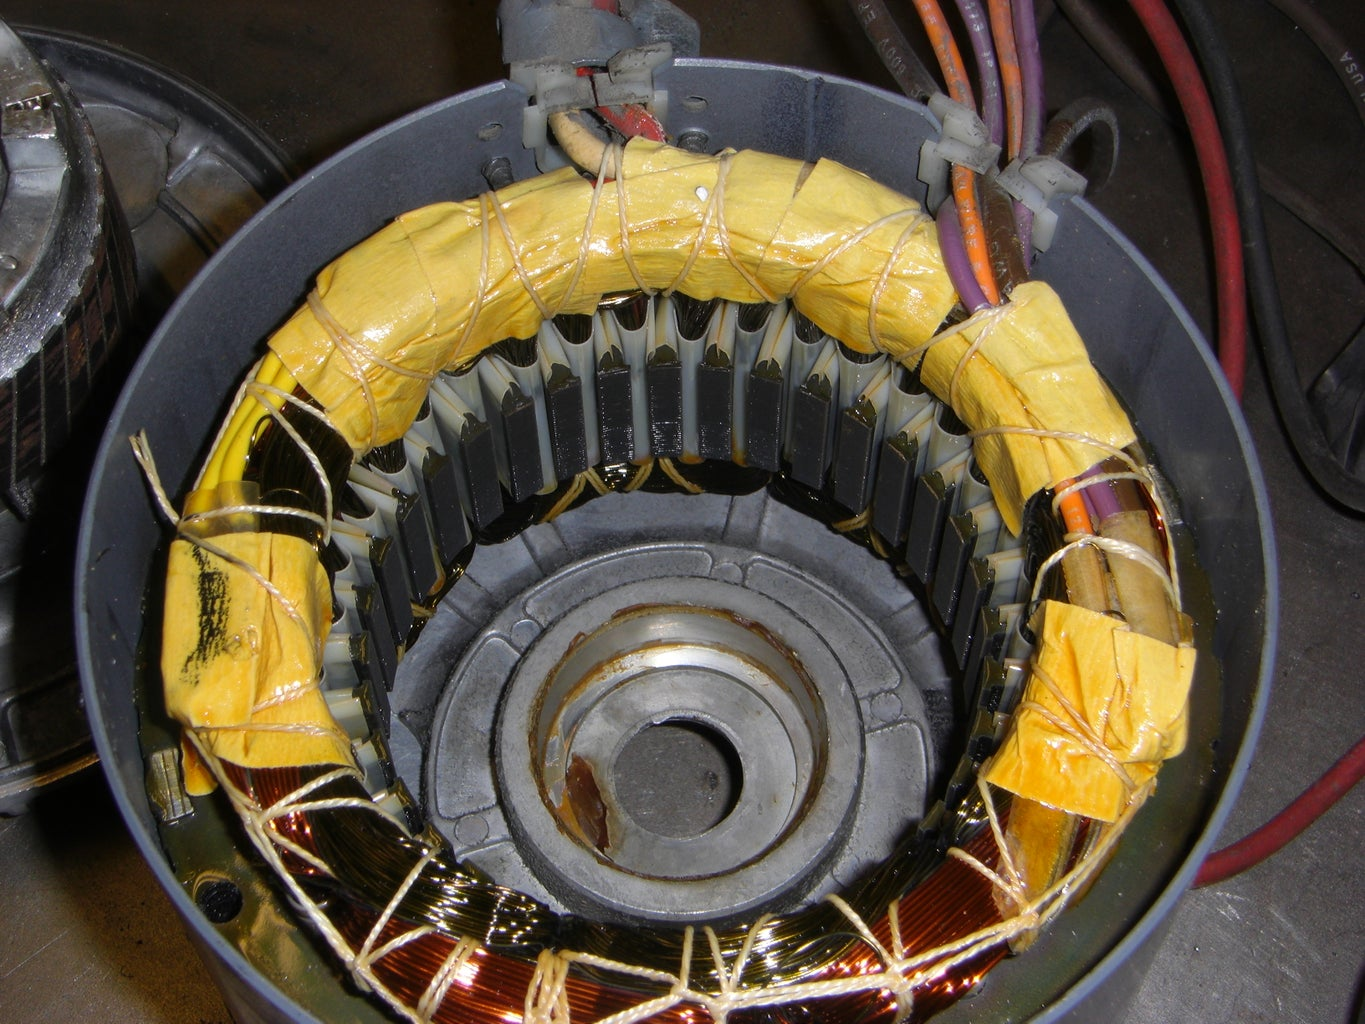 The Stator: Obtaining, Care, and Feeding